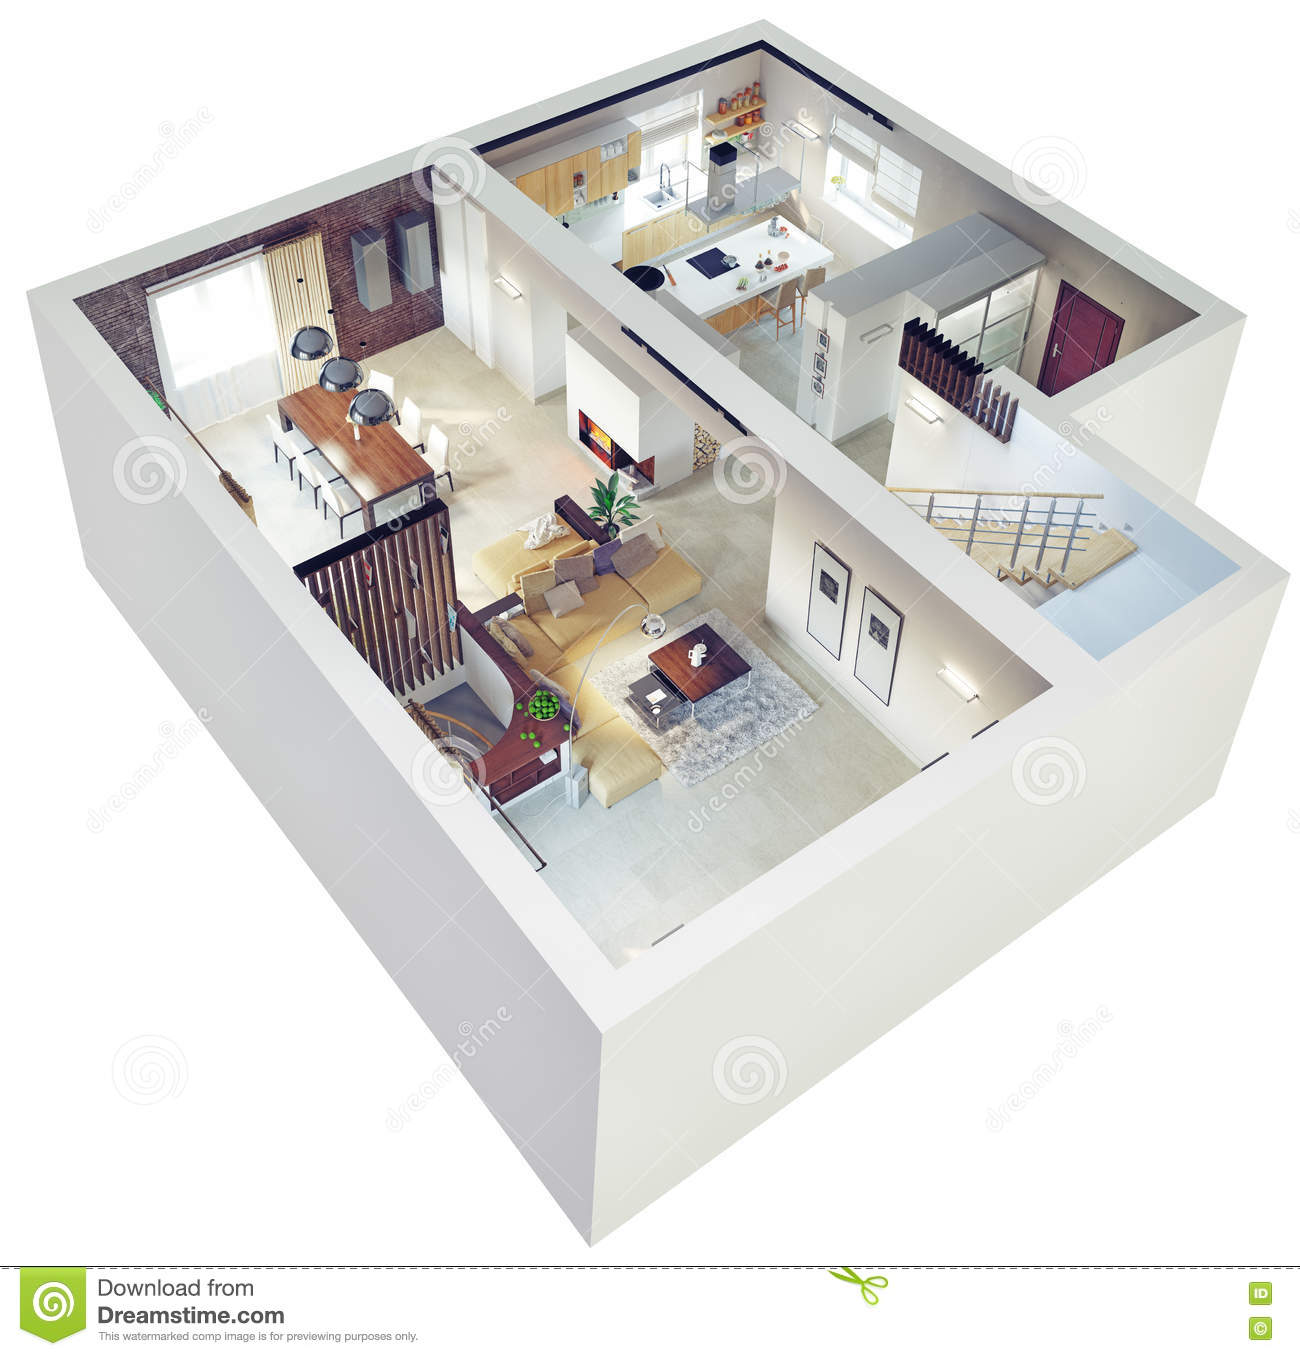 Vue De Plan D'un Appartement Illustration Stock